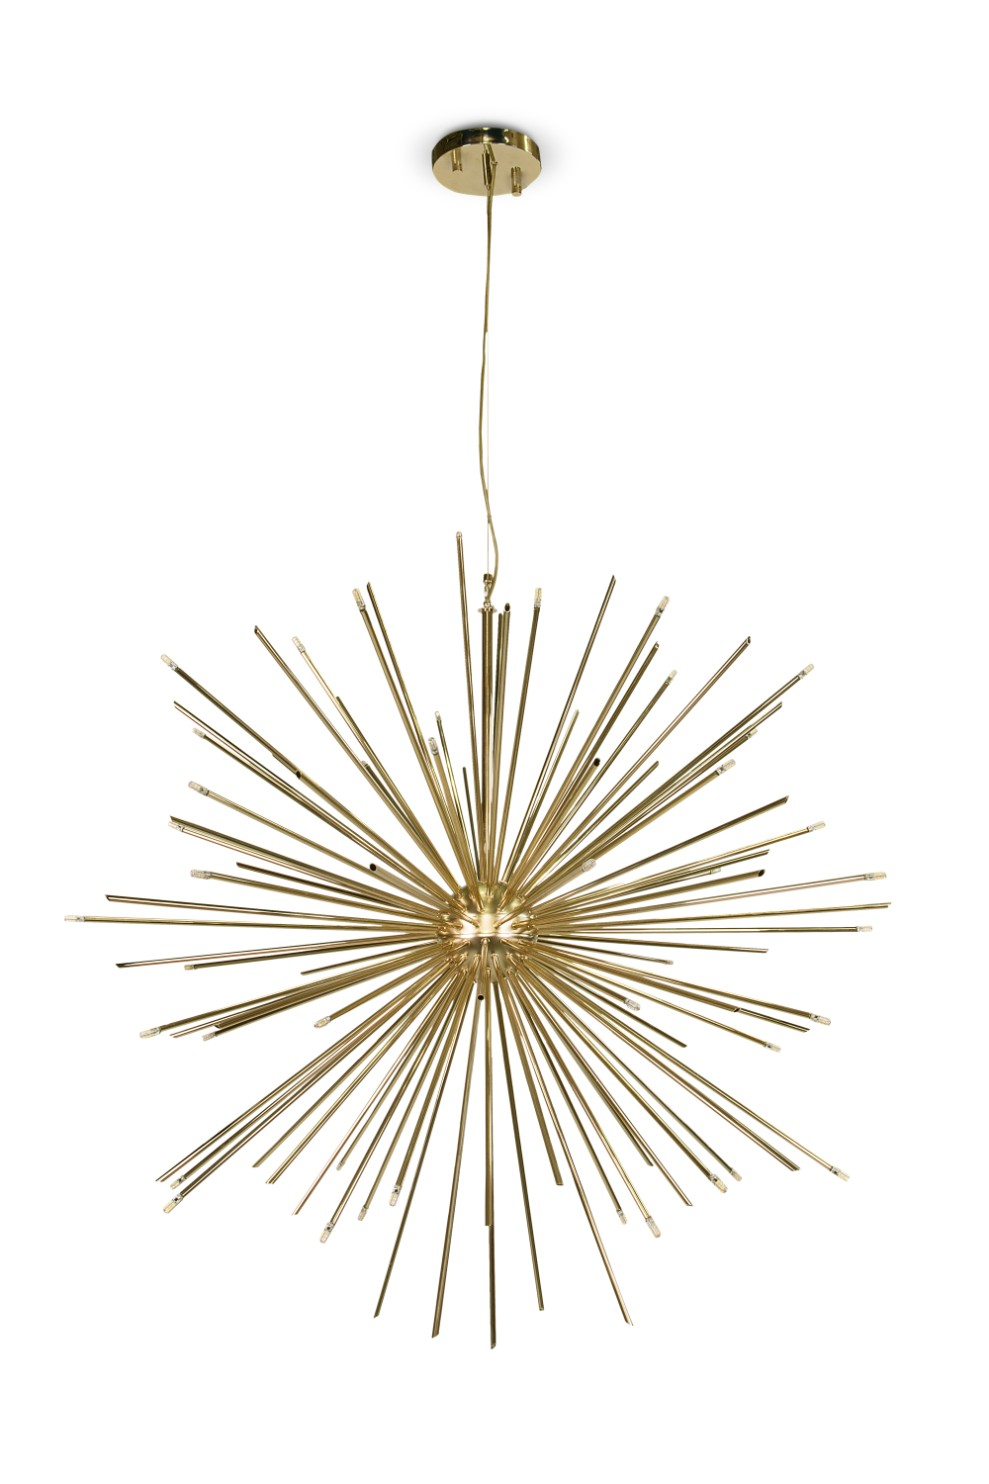 5 Golden Lamps for Your New Year Lighting Decorations New Year Lighting Decorations